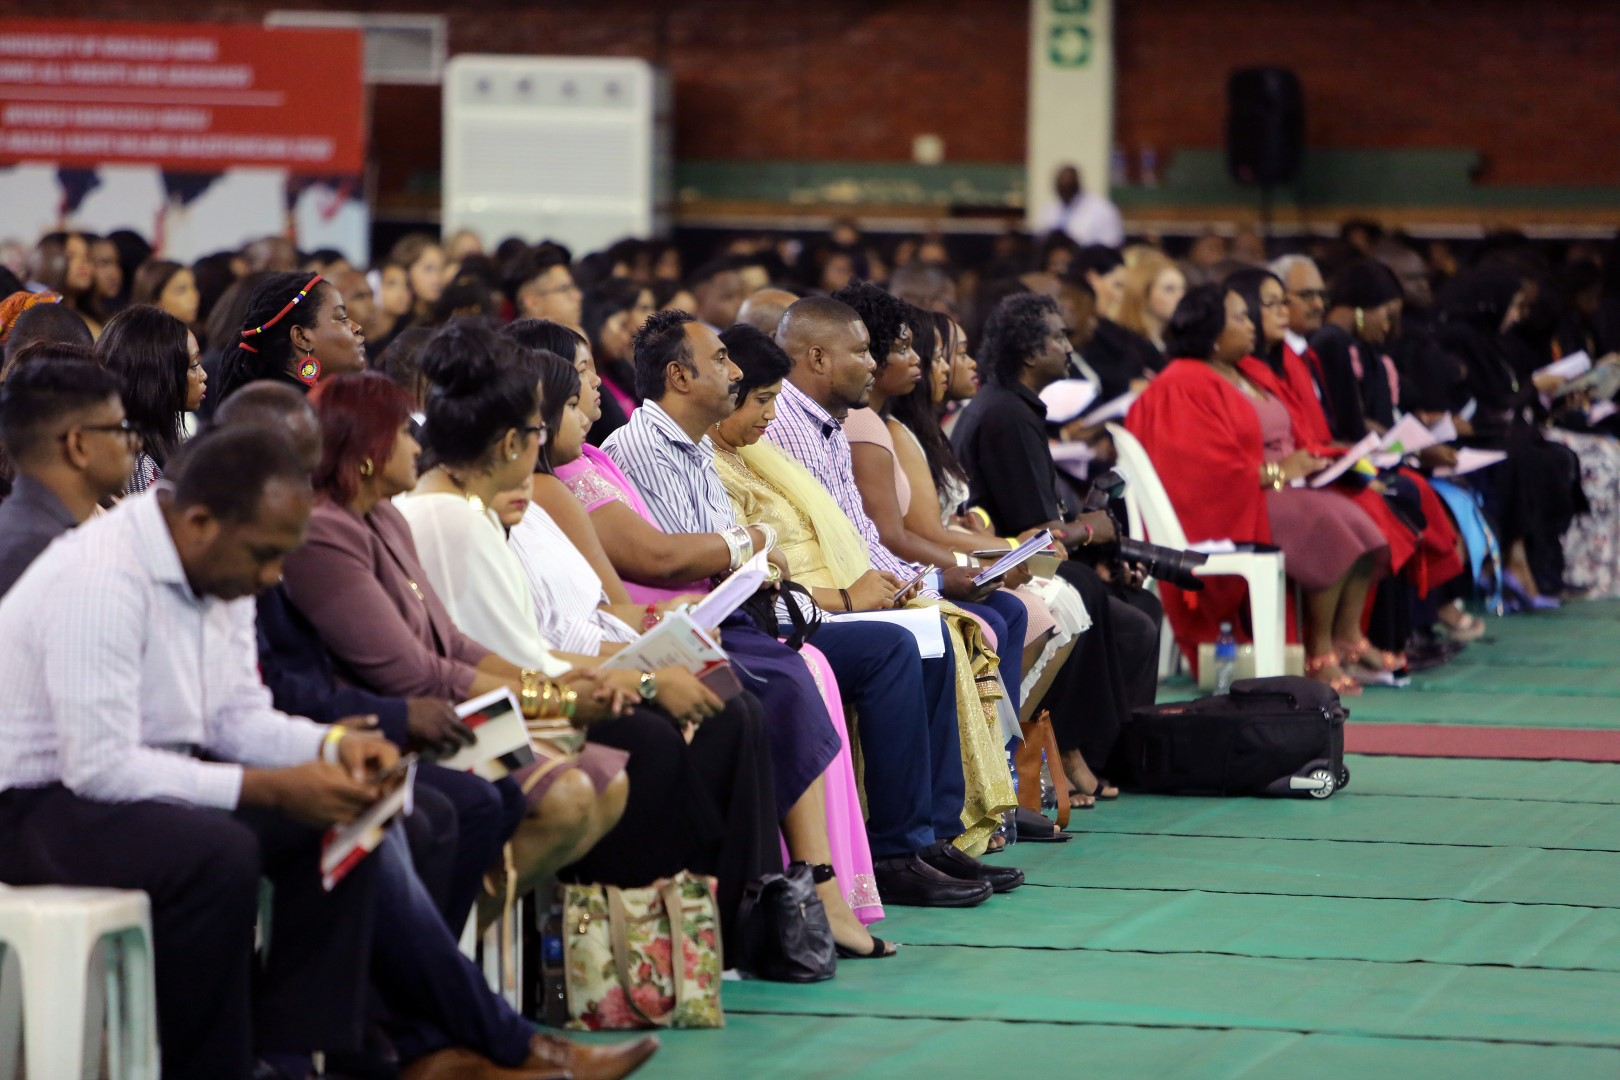 A packed hall for the UKZN graduation ceremony